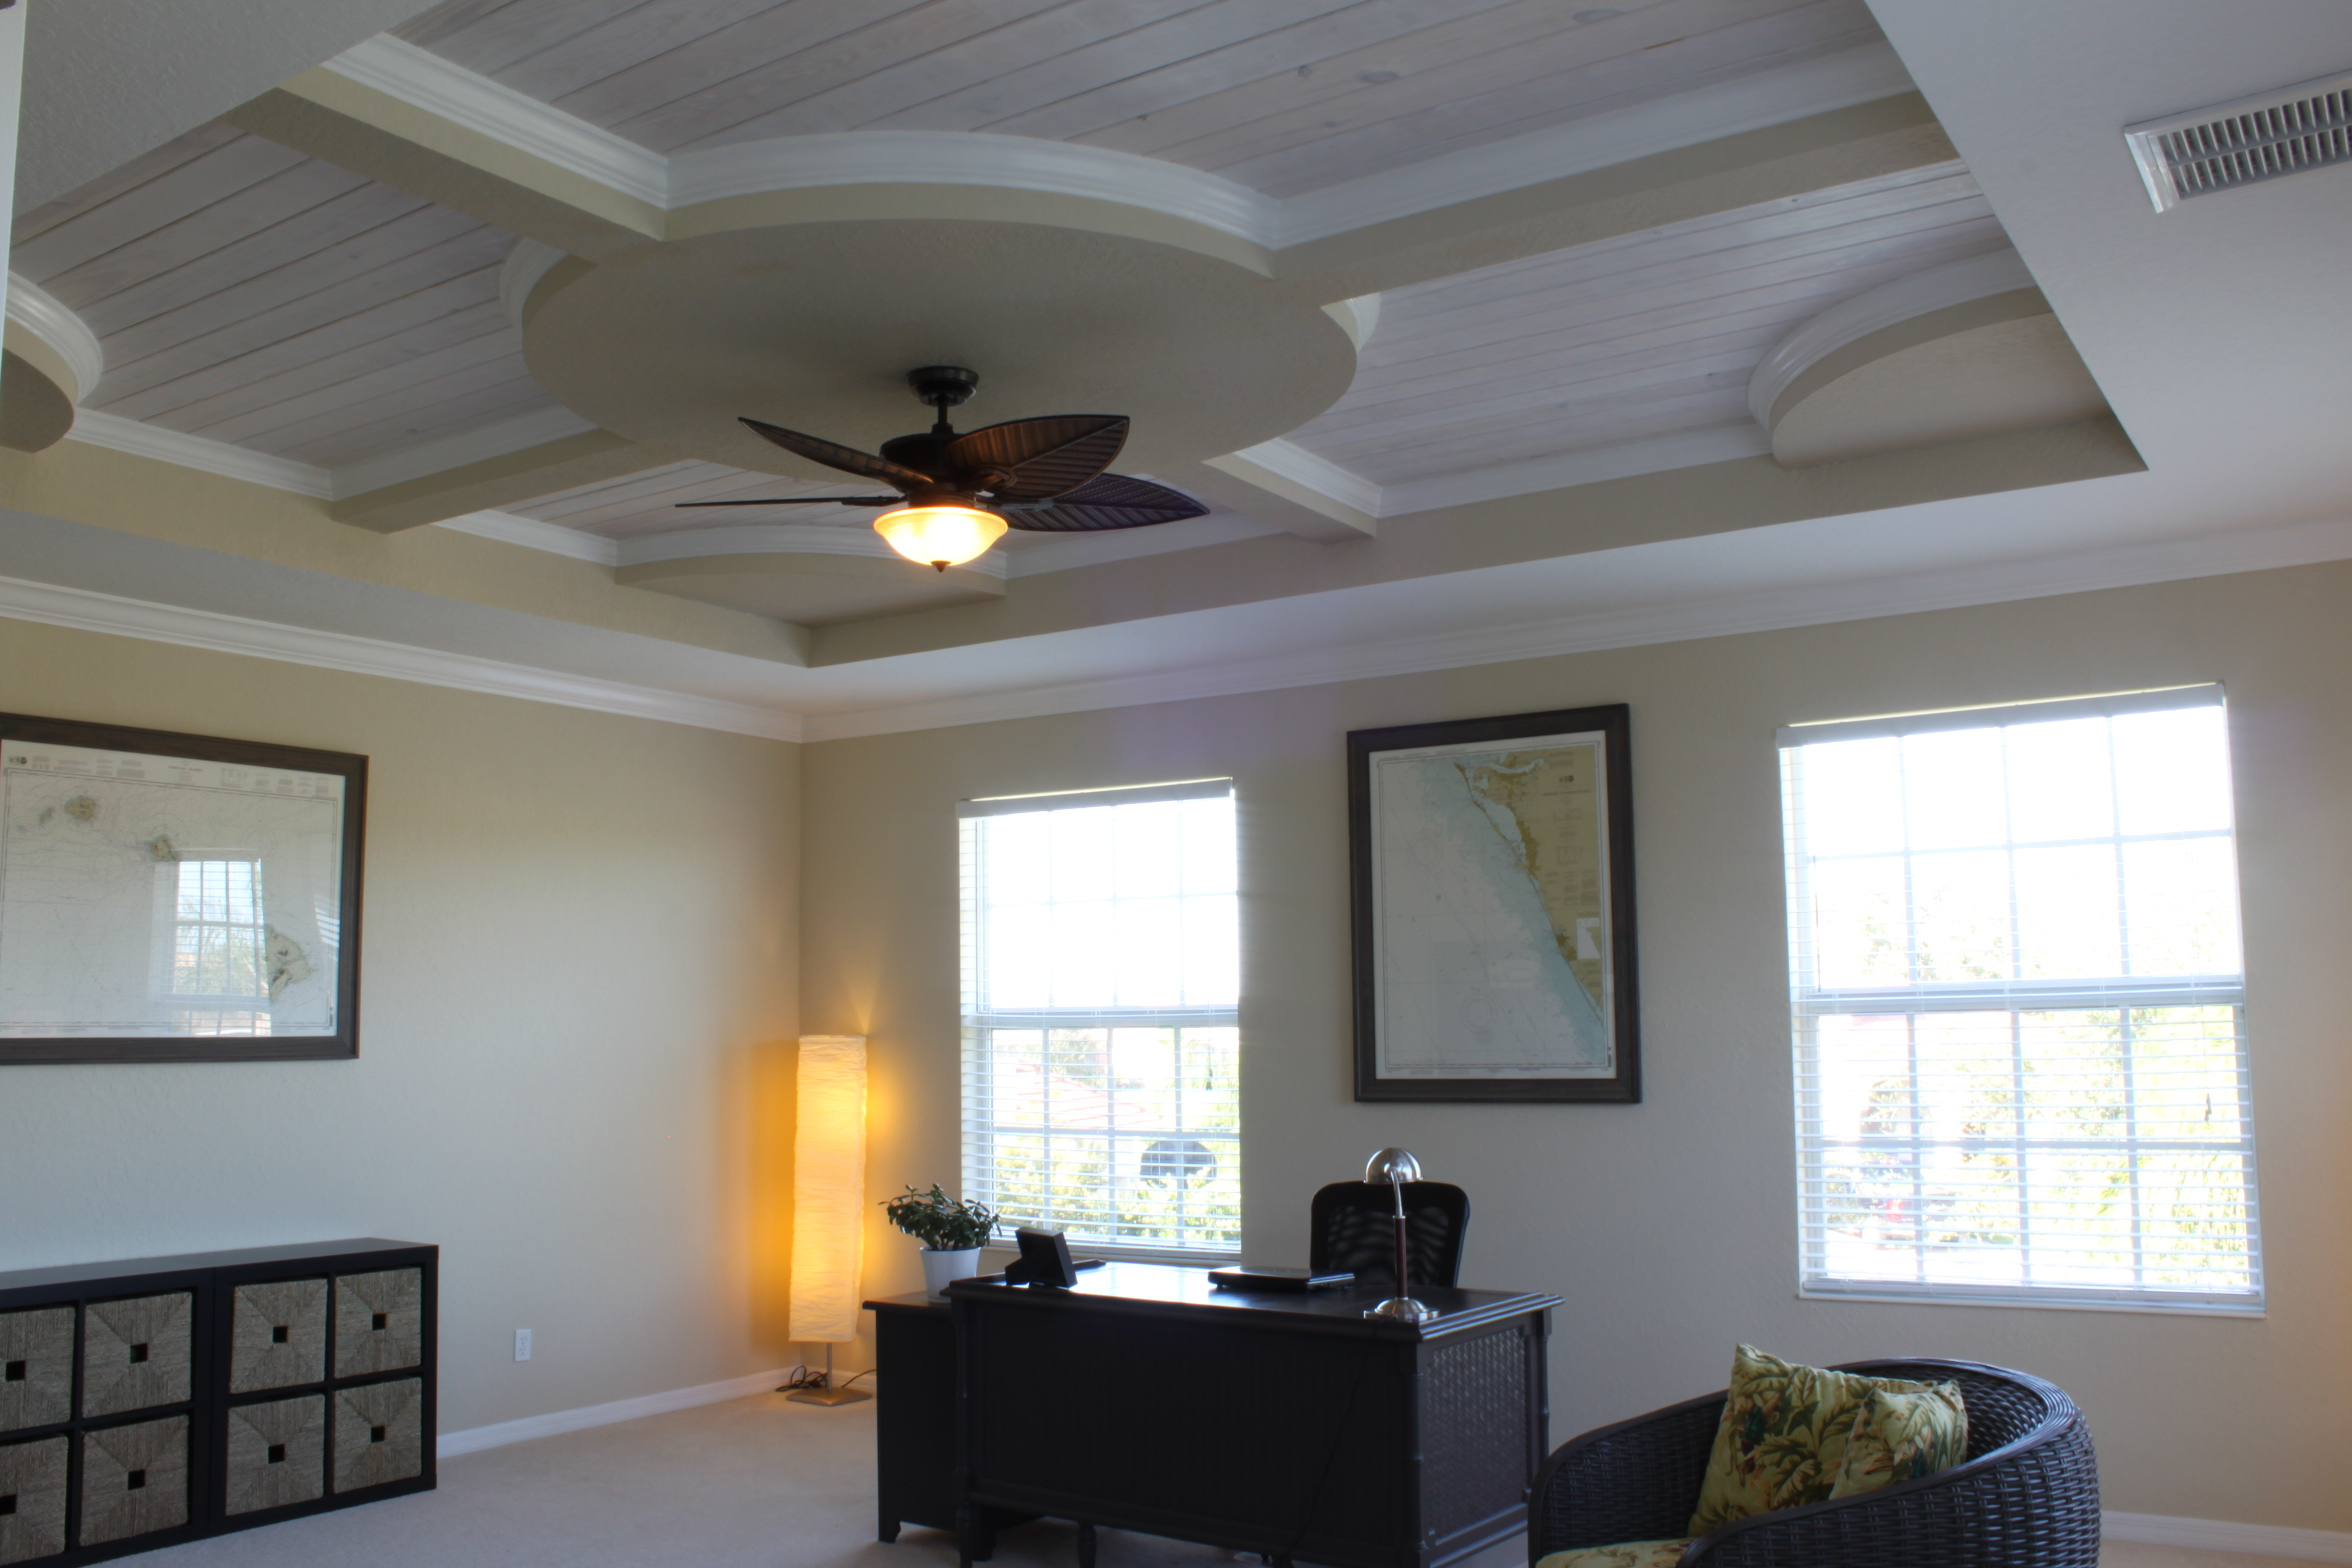 Custom Wood Ceiling, Crown Molding